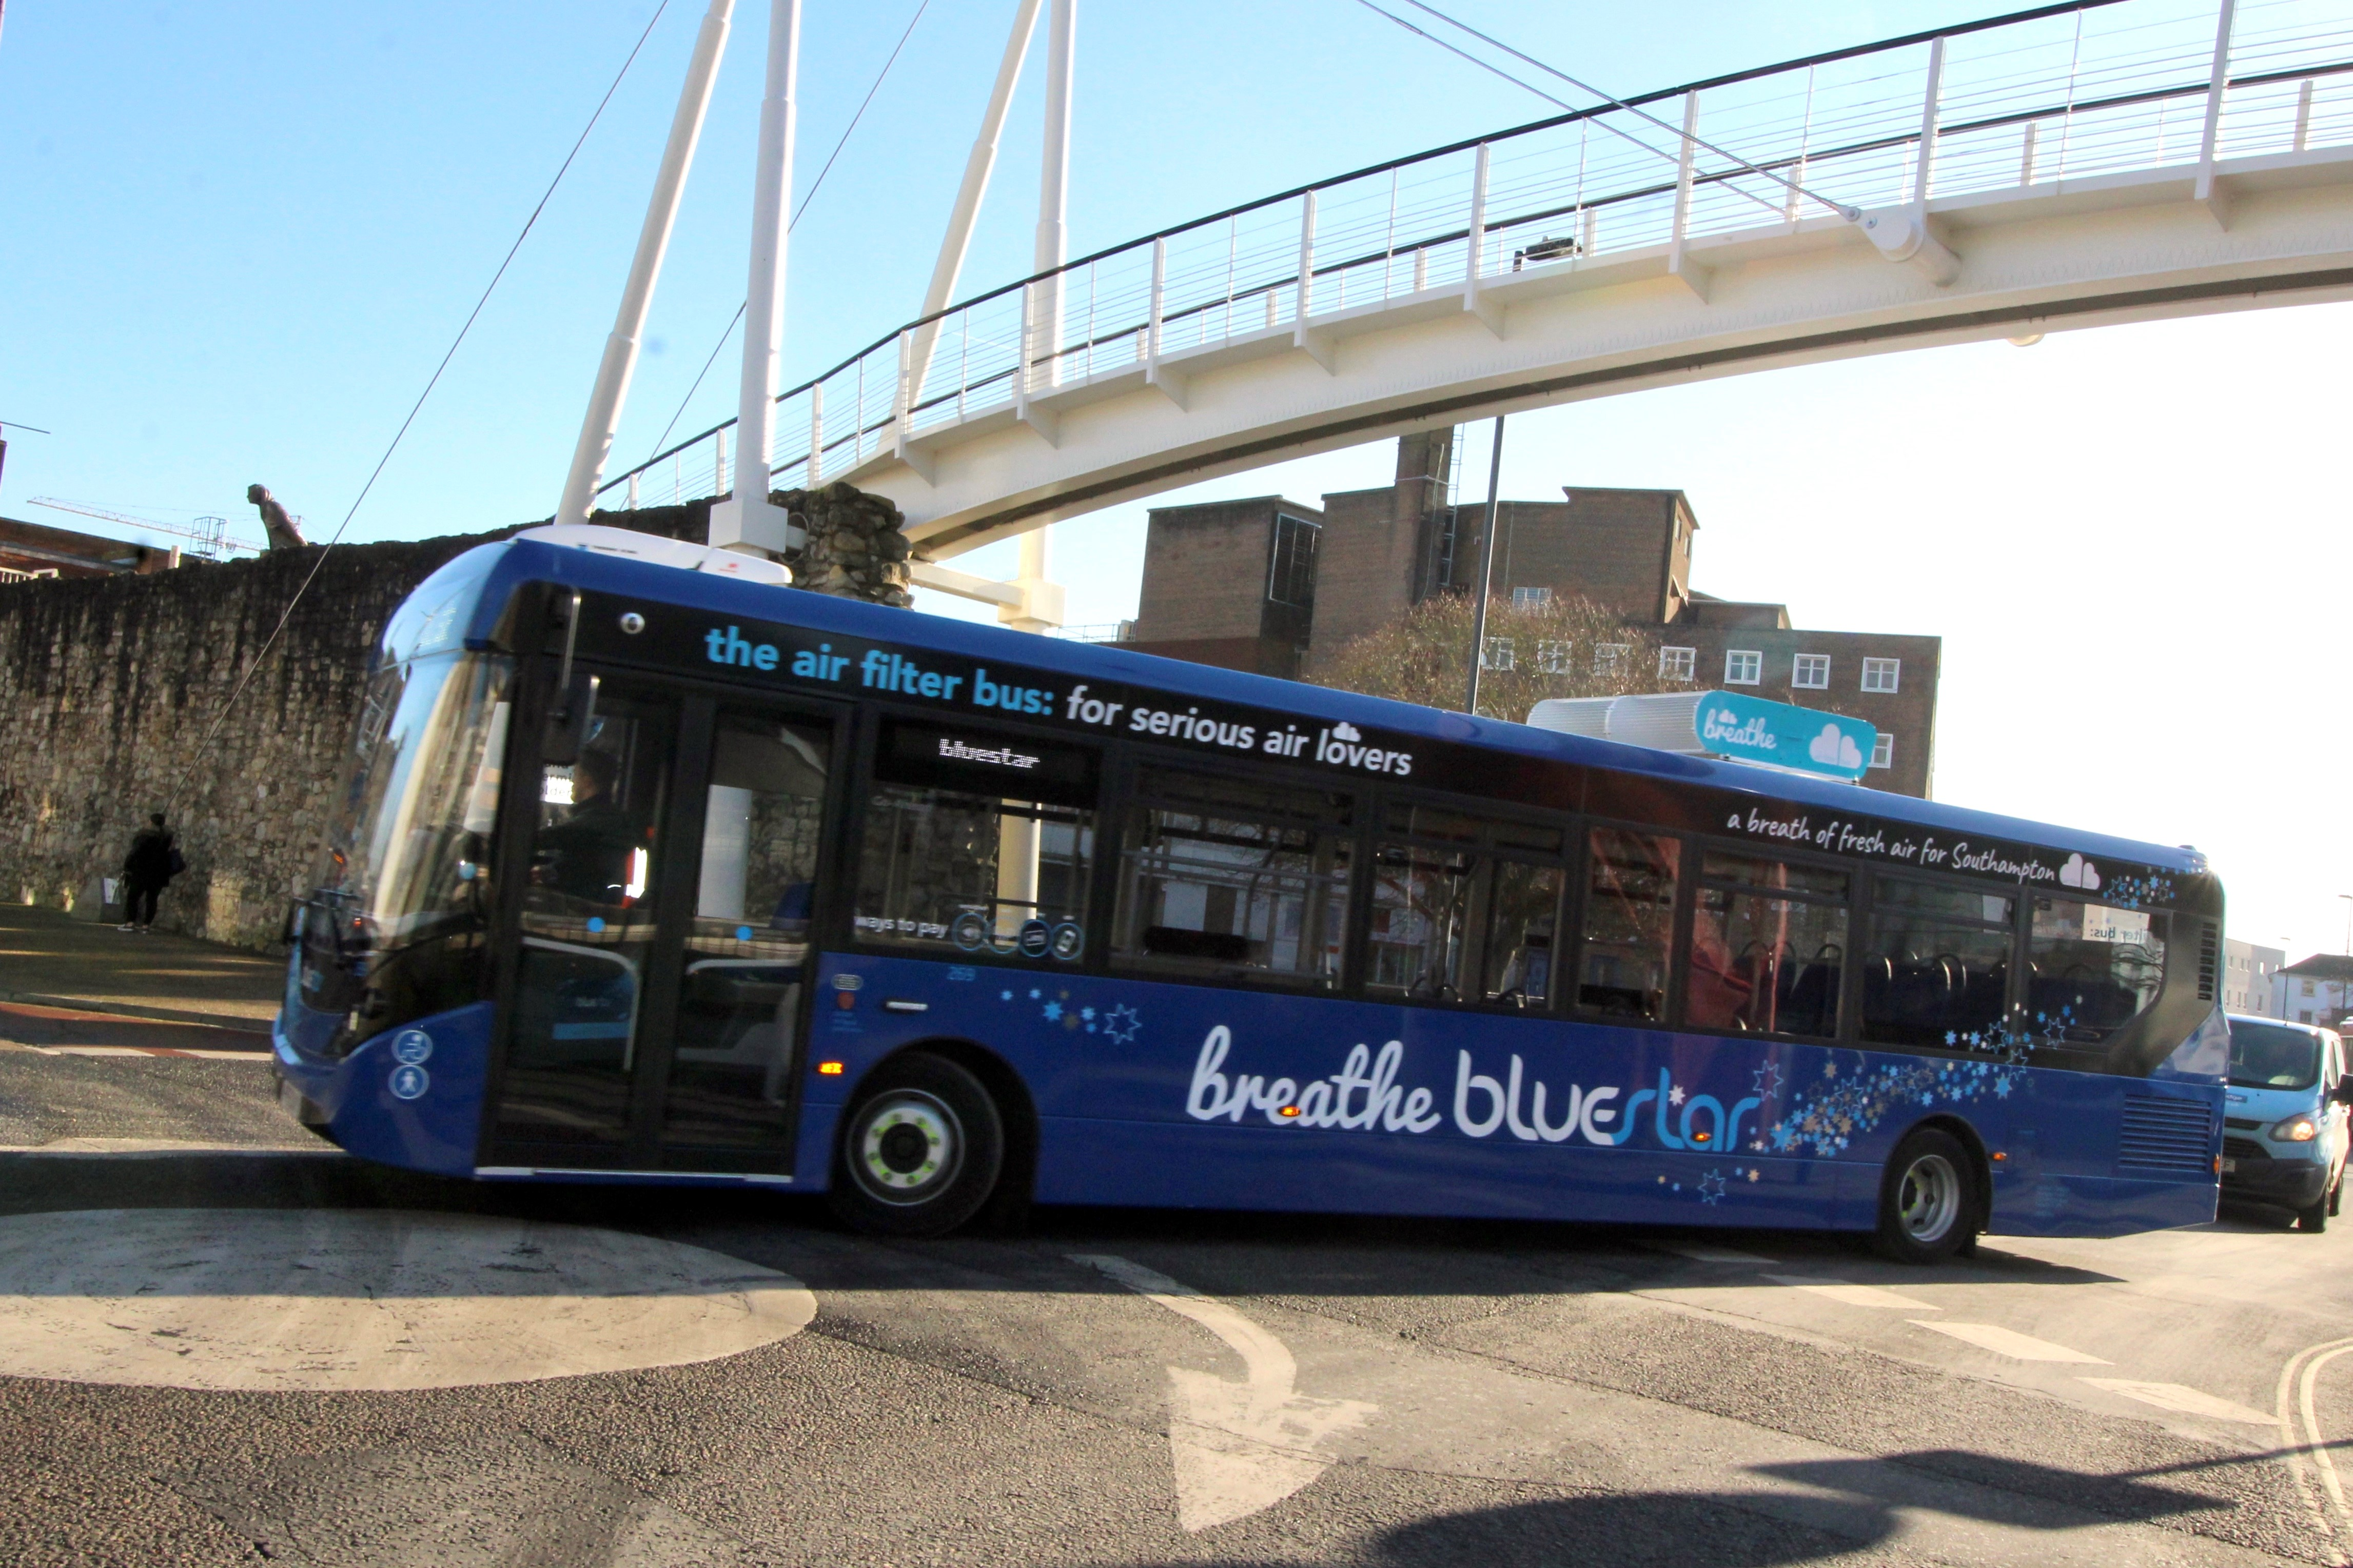 Image of a bluestar breather bus in Southampton